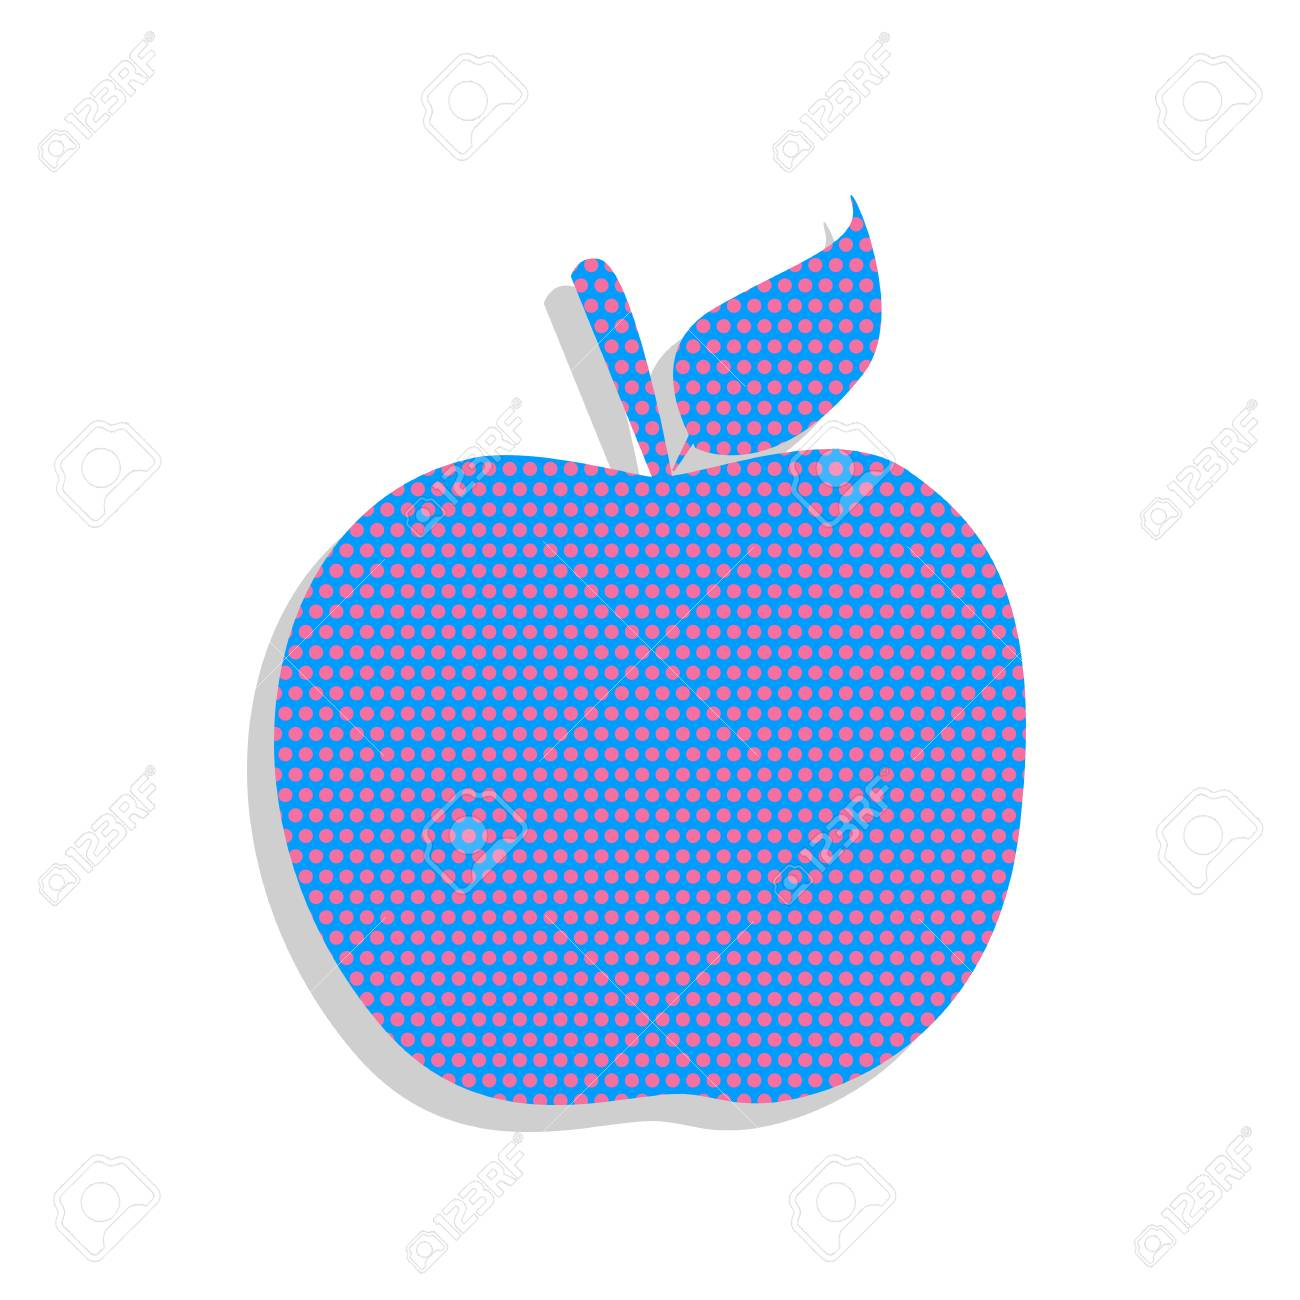 apple sign illustration. vector. neon blue icon with cyclamen